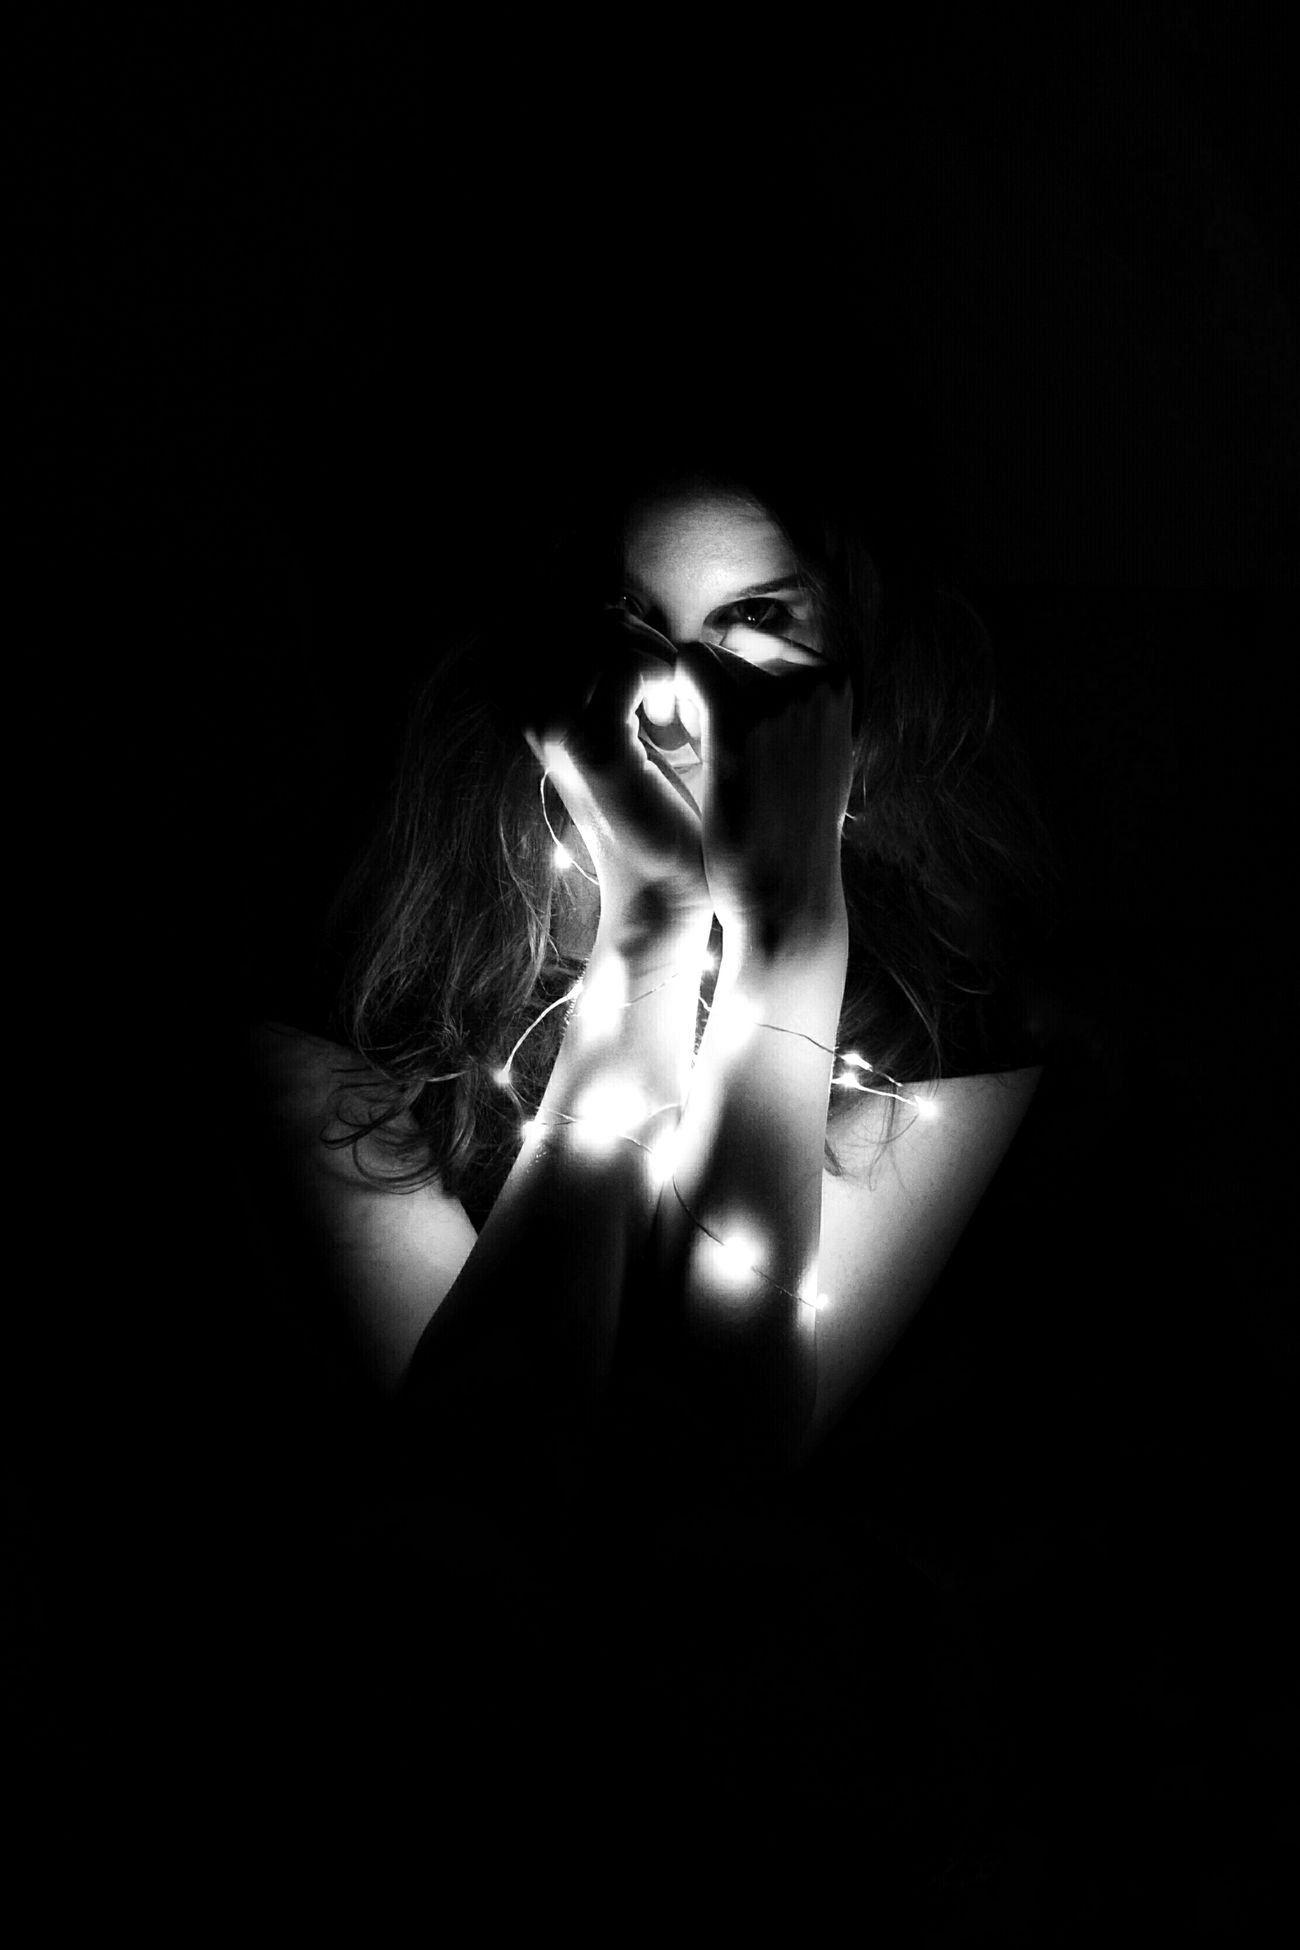 Shadow Dark Beauty Beautiful People Females Monochrome Black Background Indoors  Human Hand Light EyeEmNewHere Photo Photography Grunge Vintage Style Blackandwhite Photography Grey And White Sleepwalker Wicked People All_shots Portrait Closed Minds